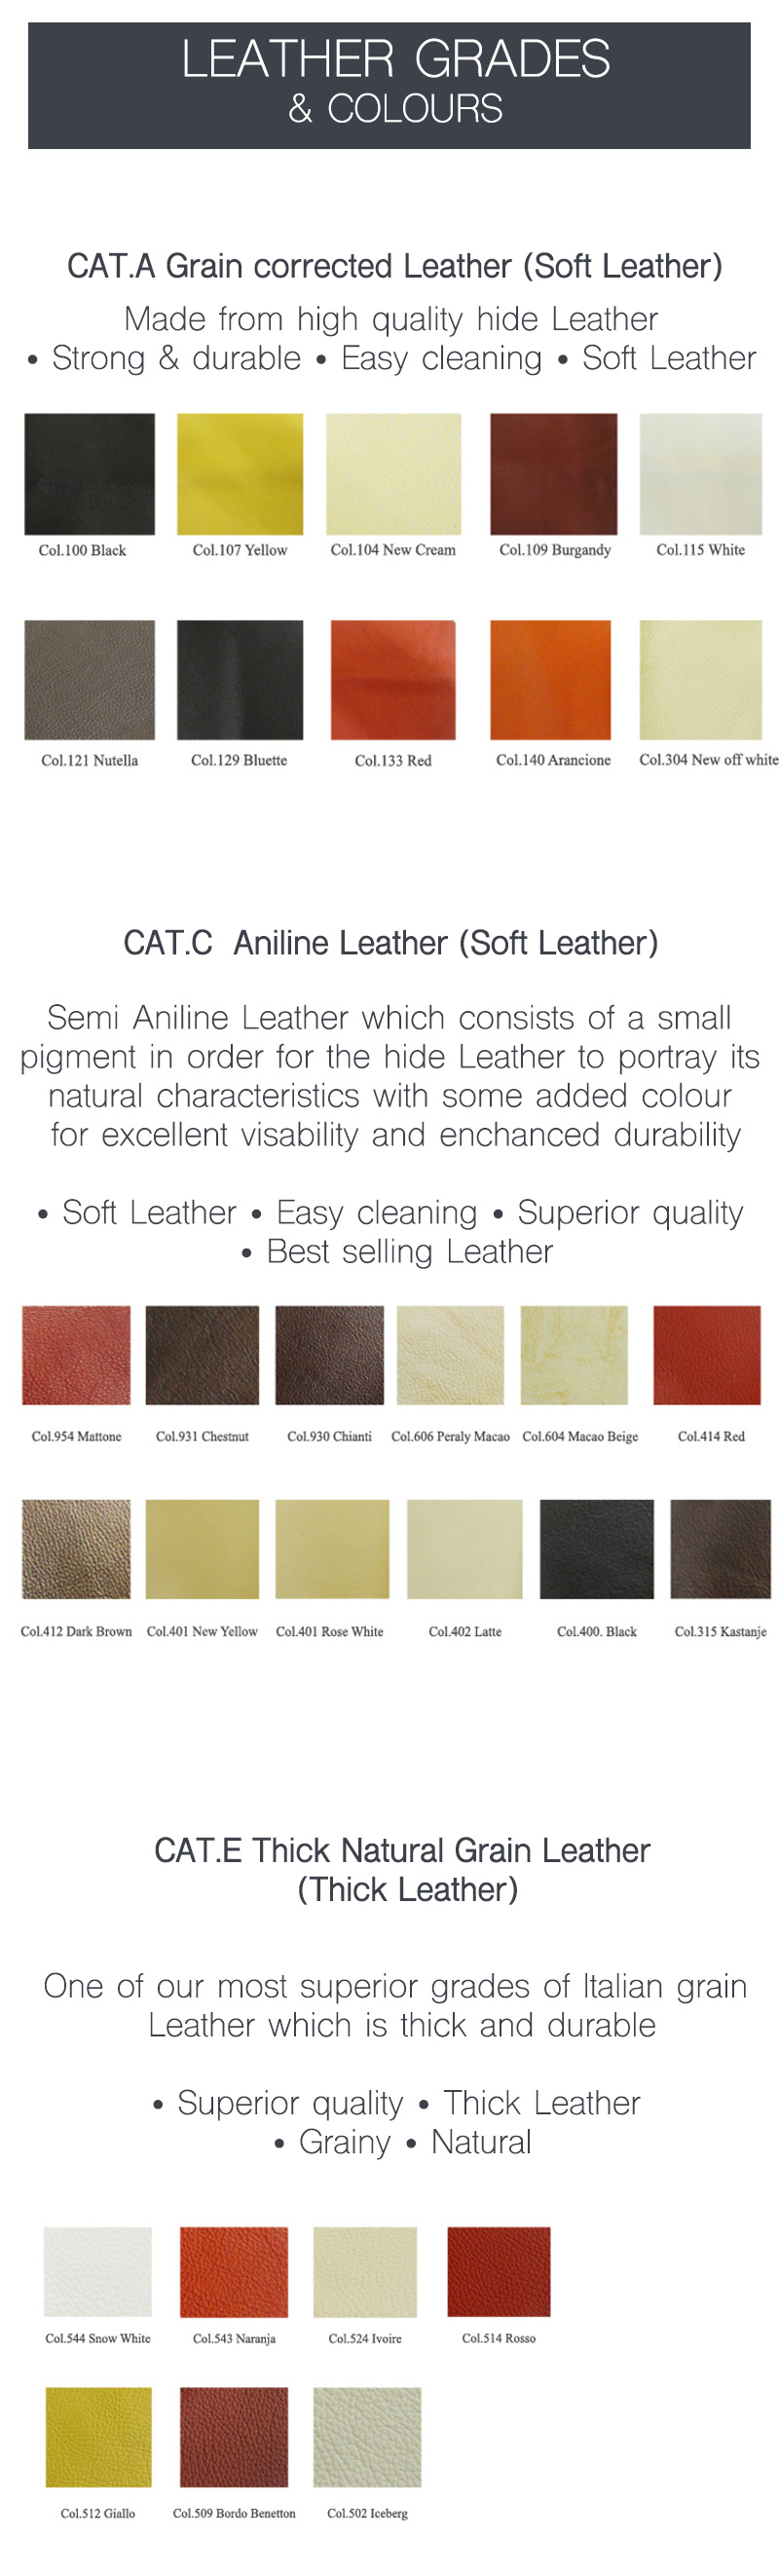 leather-grades-and-colours